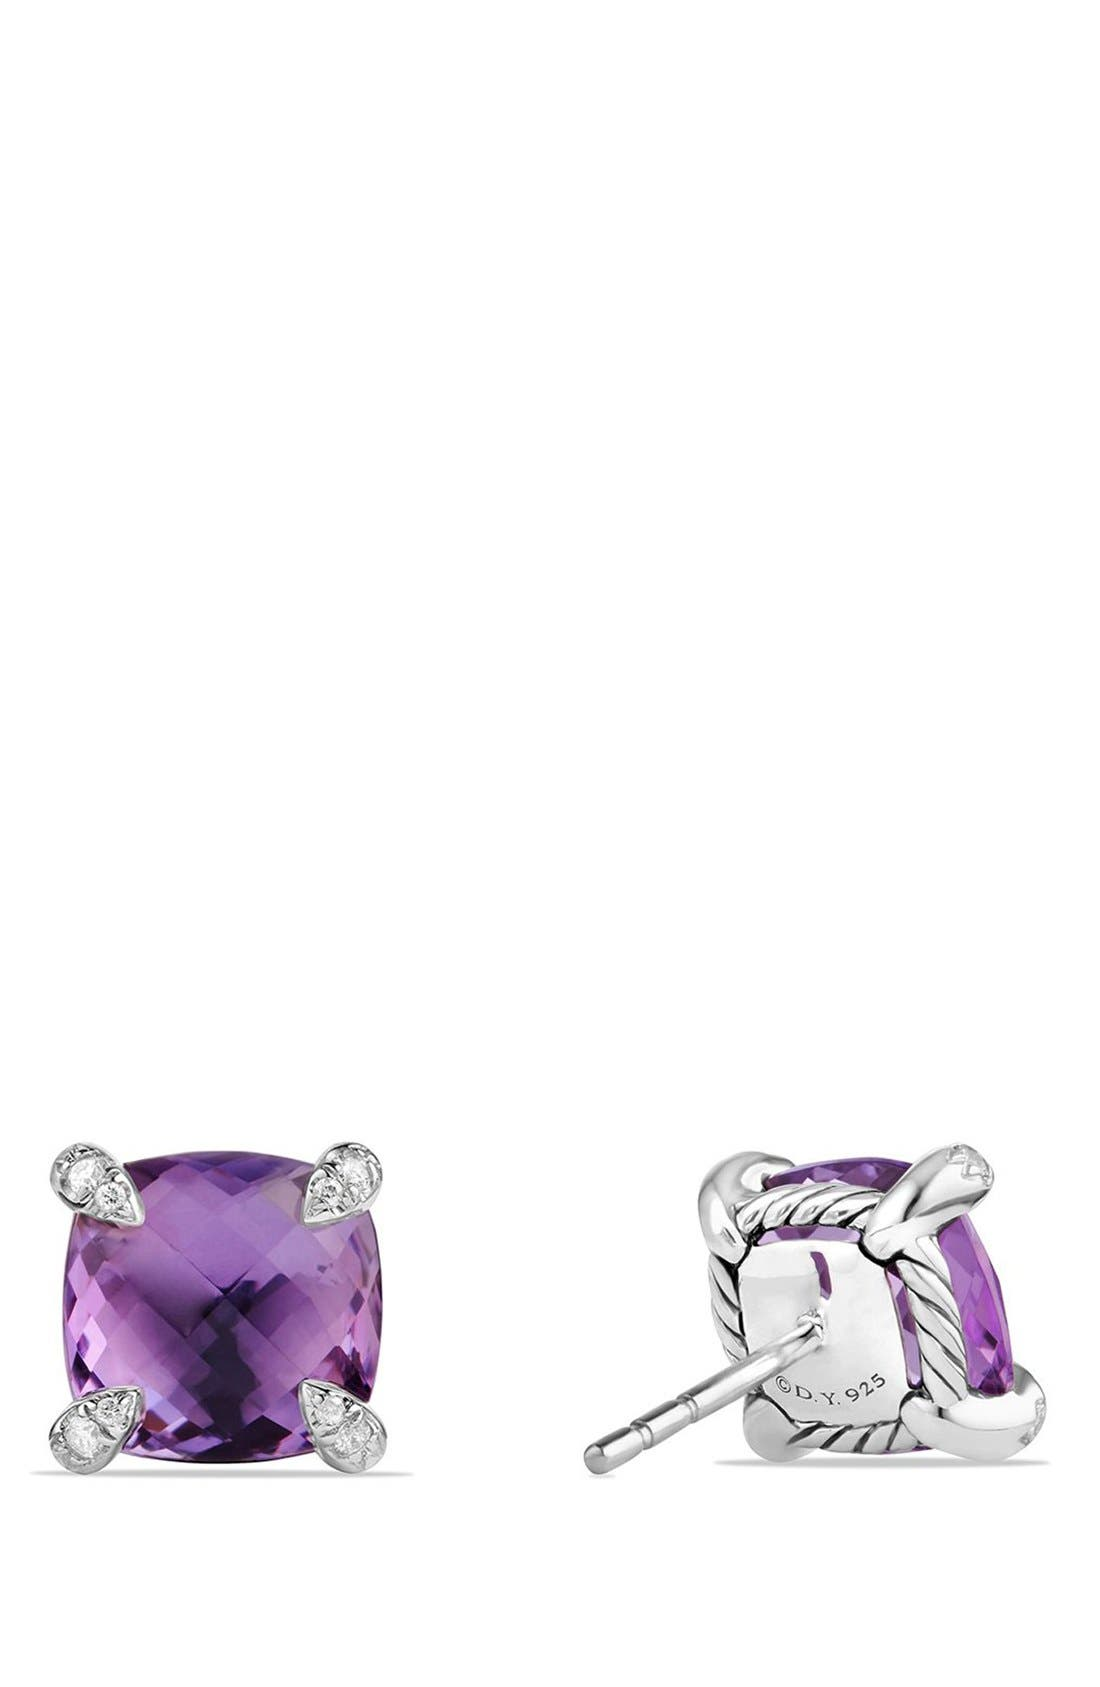 'Châtelaine' Earrings with Semiprecious Stones and Diamonds,                             Alternate thumbnail 2, color,                             Silver/ Amethyst